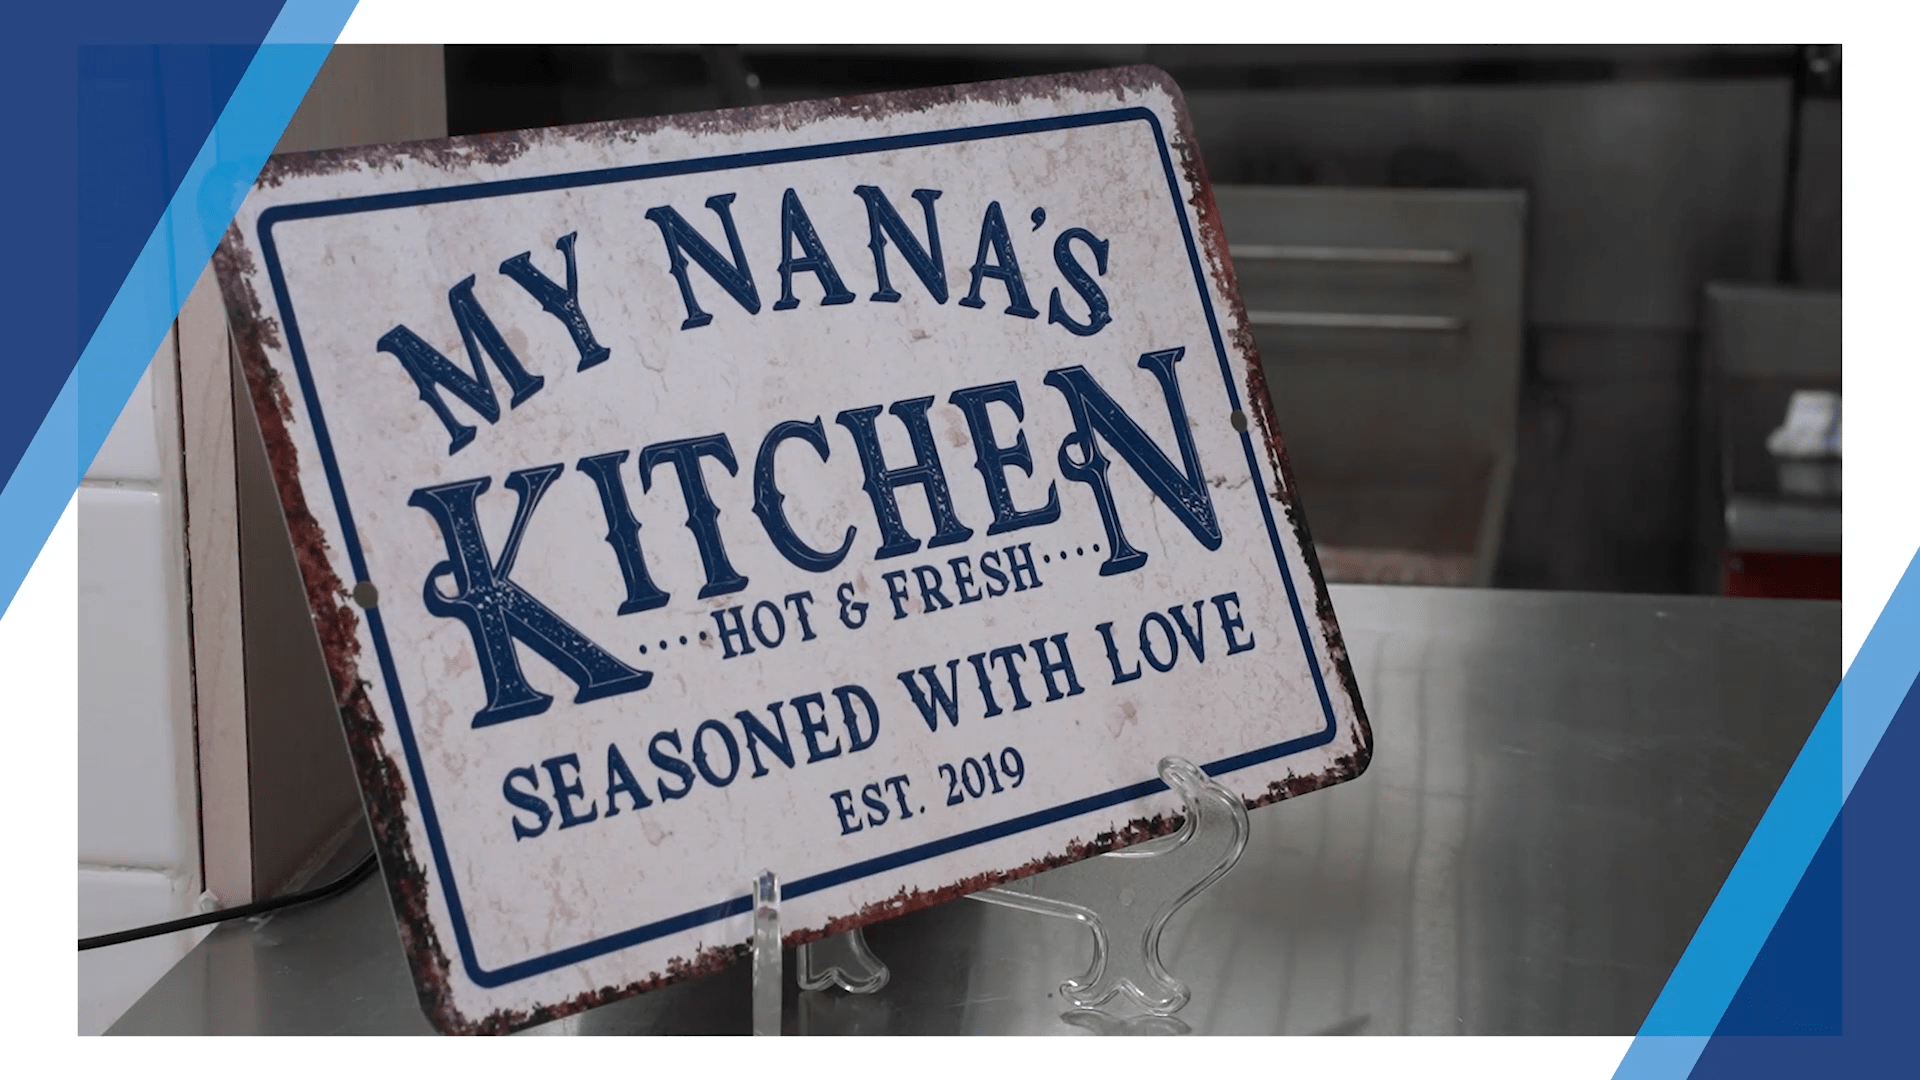 A white sign with dark blue text that reads: My Nana's Kitchen, ...Hot & Fresh..., Seasoned With Love, Est . 2019